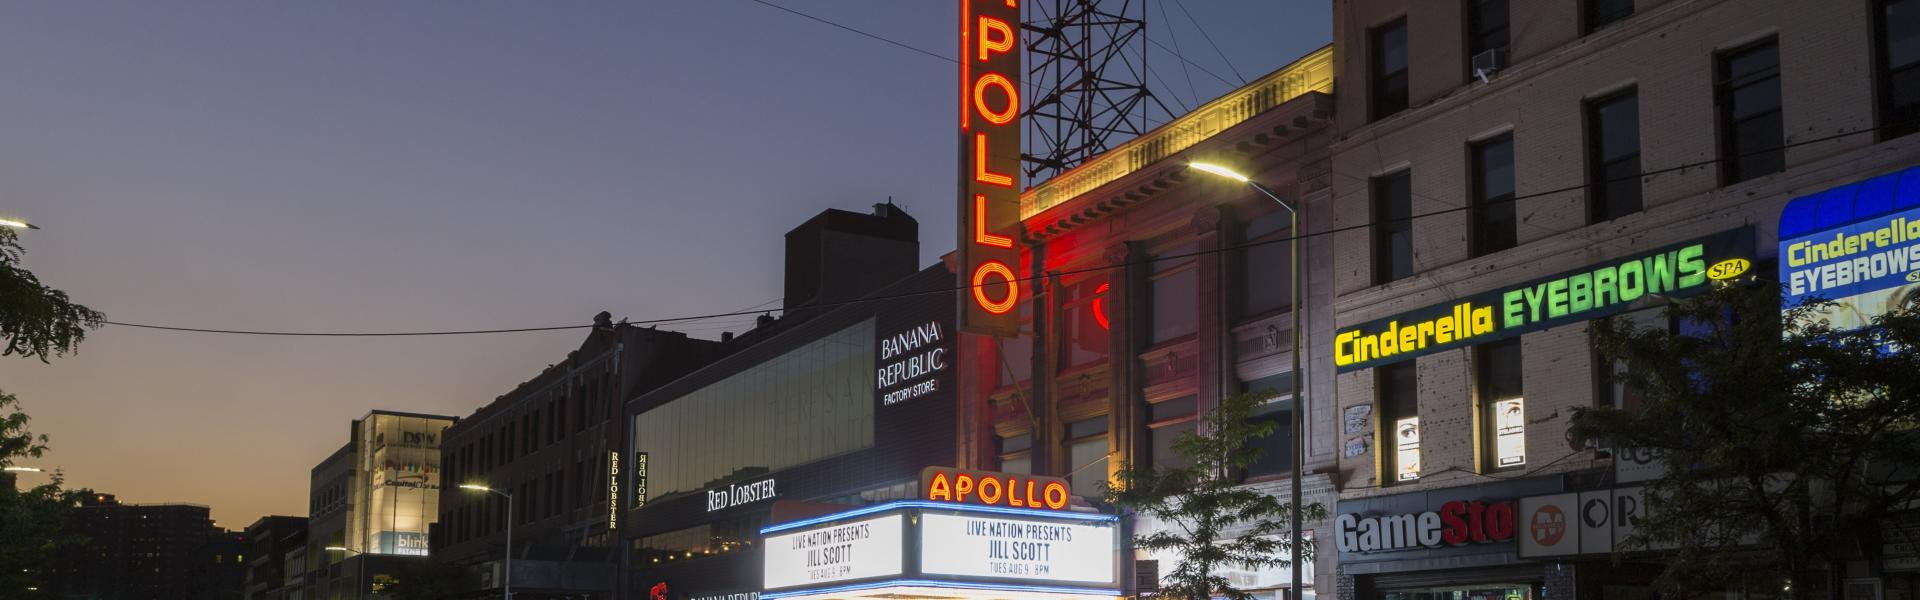 The Apollo Theatre exterior